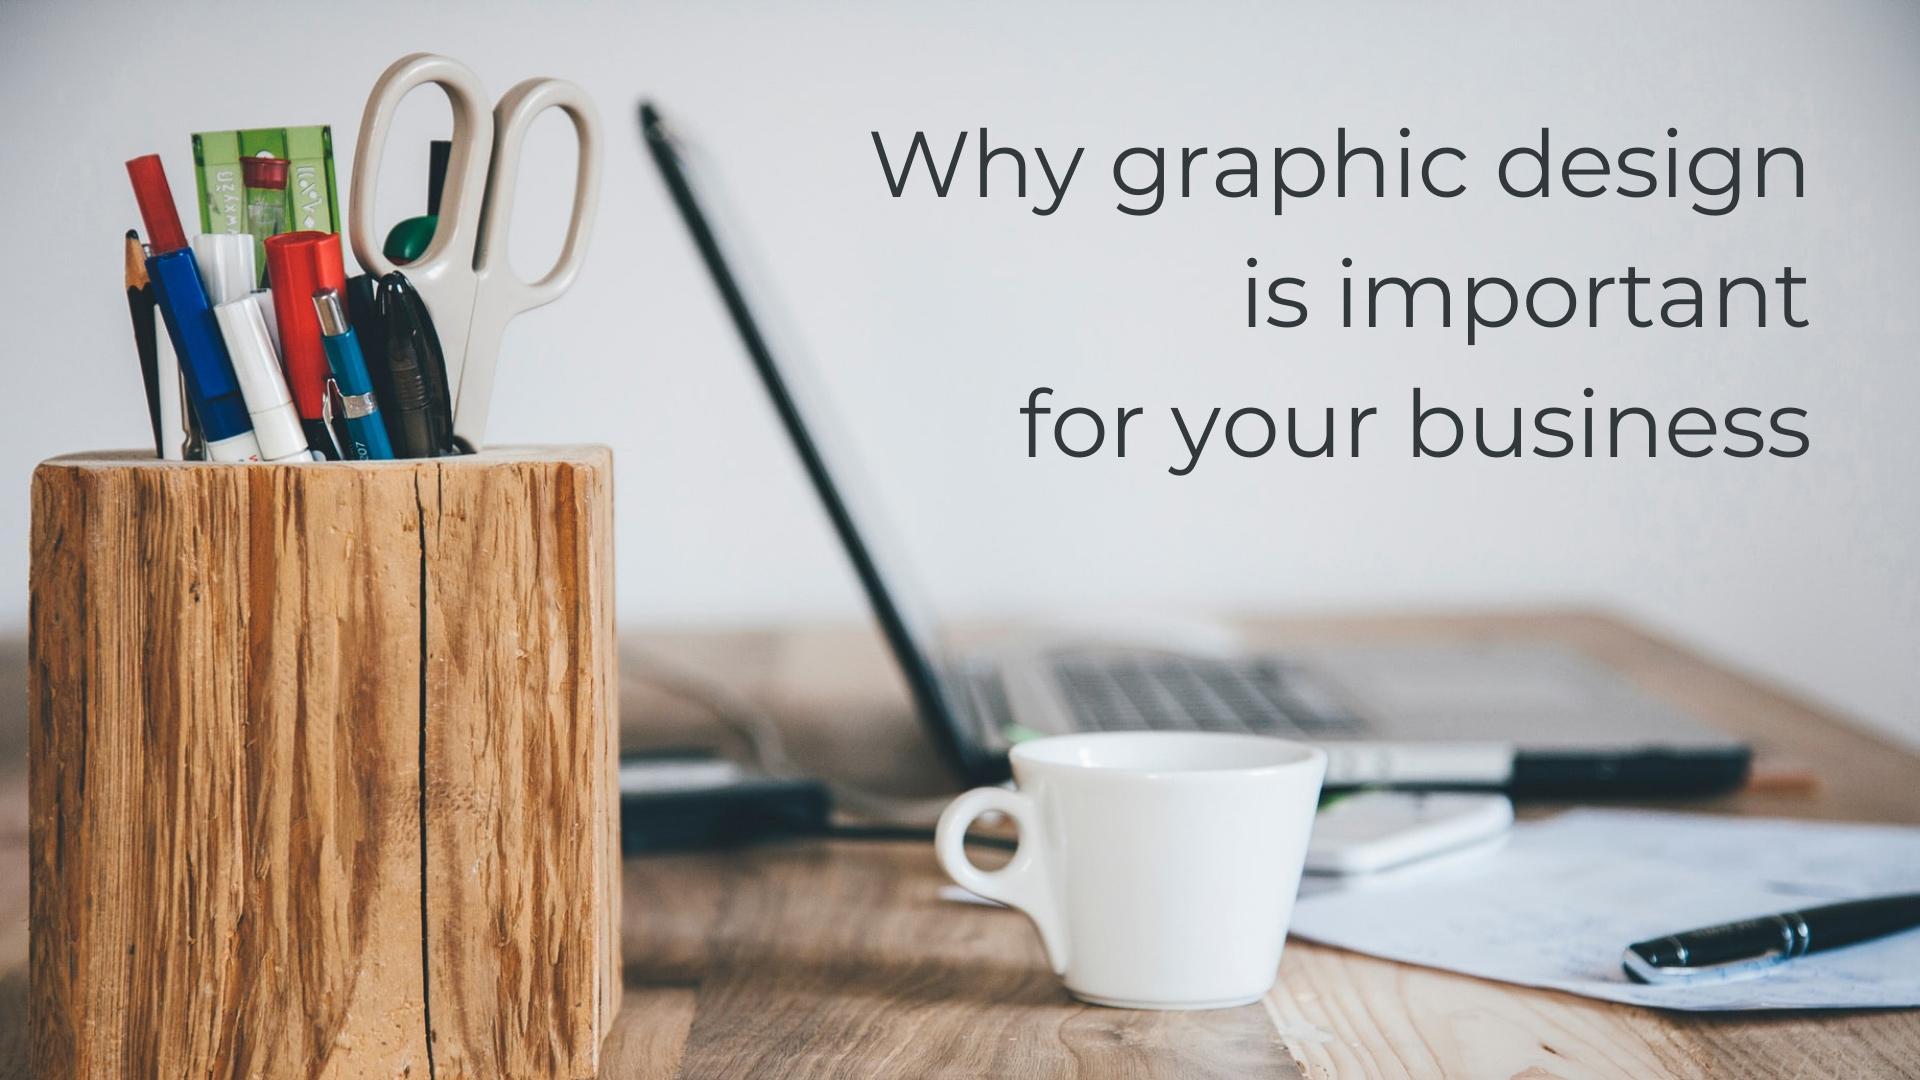 why graphic design is important for your business banner